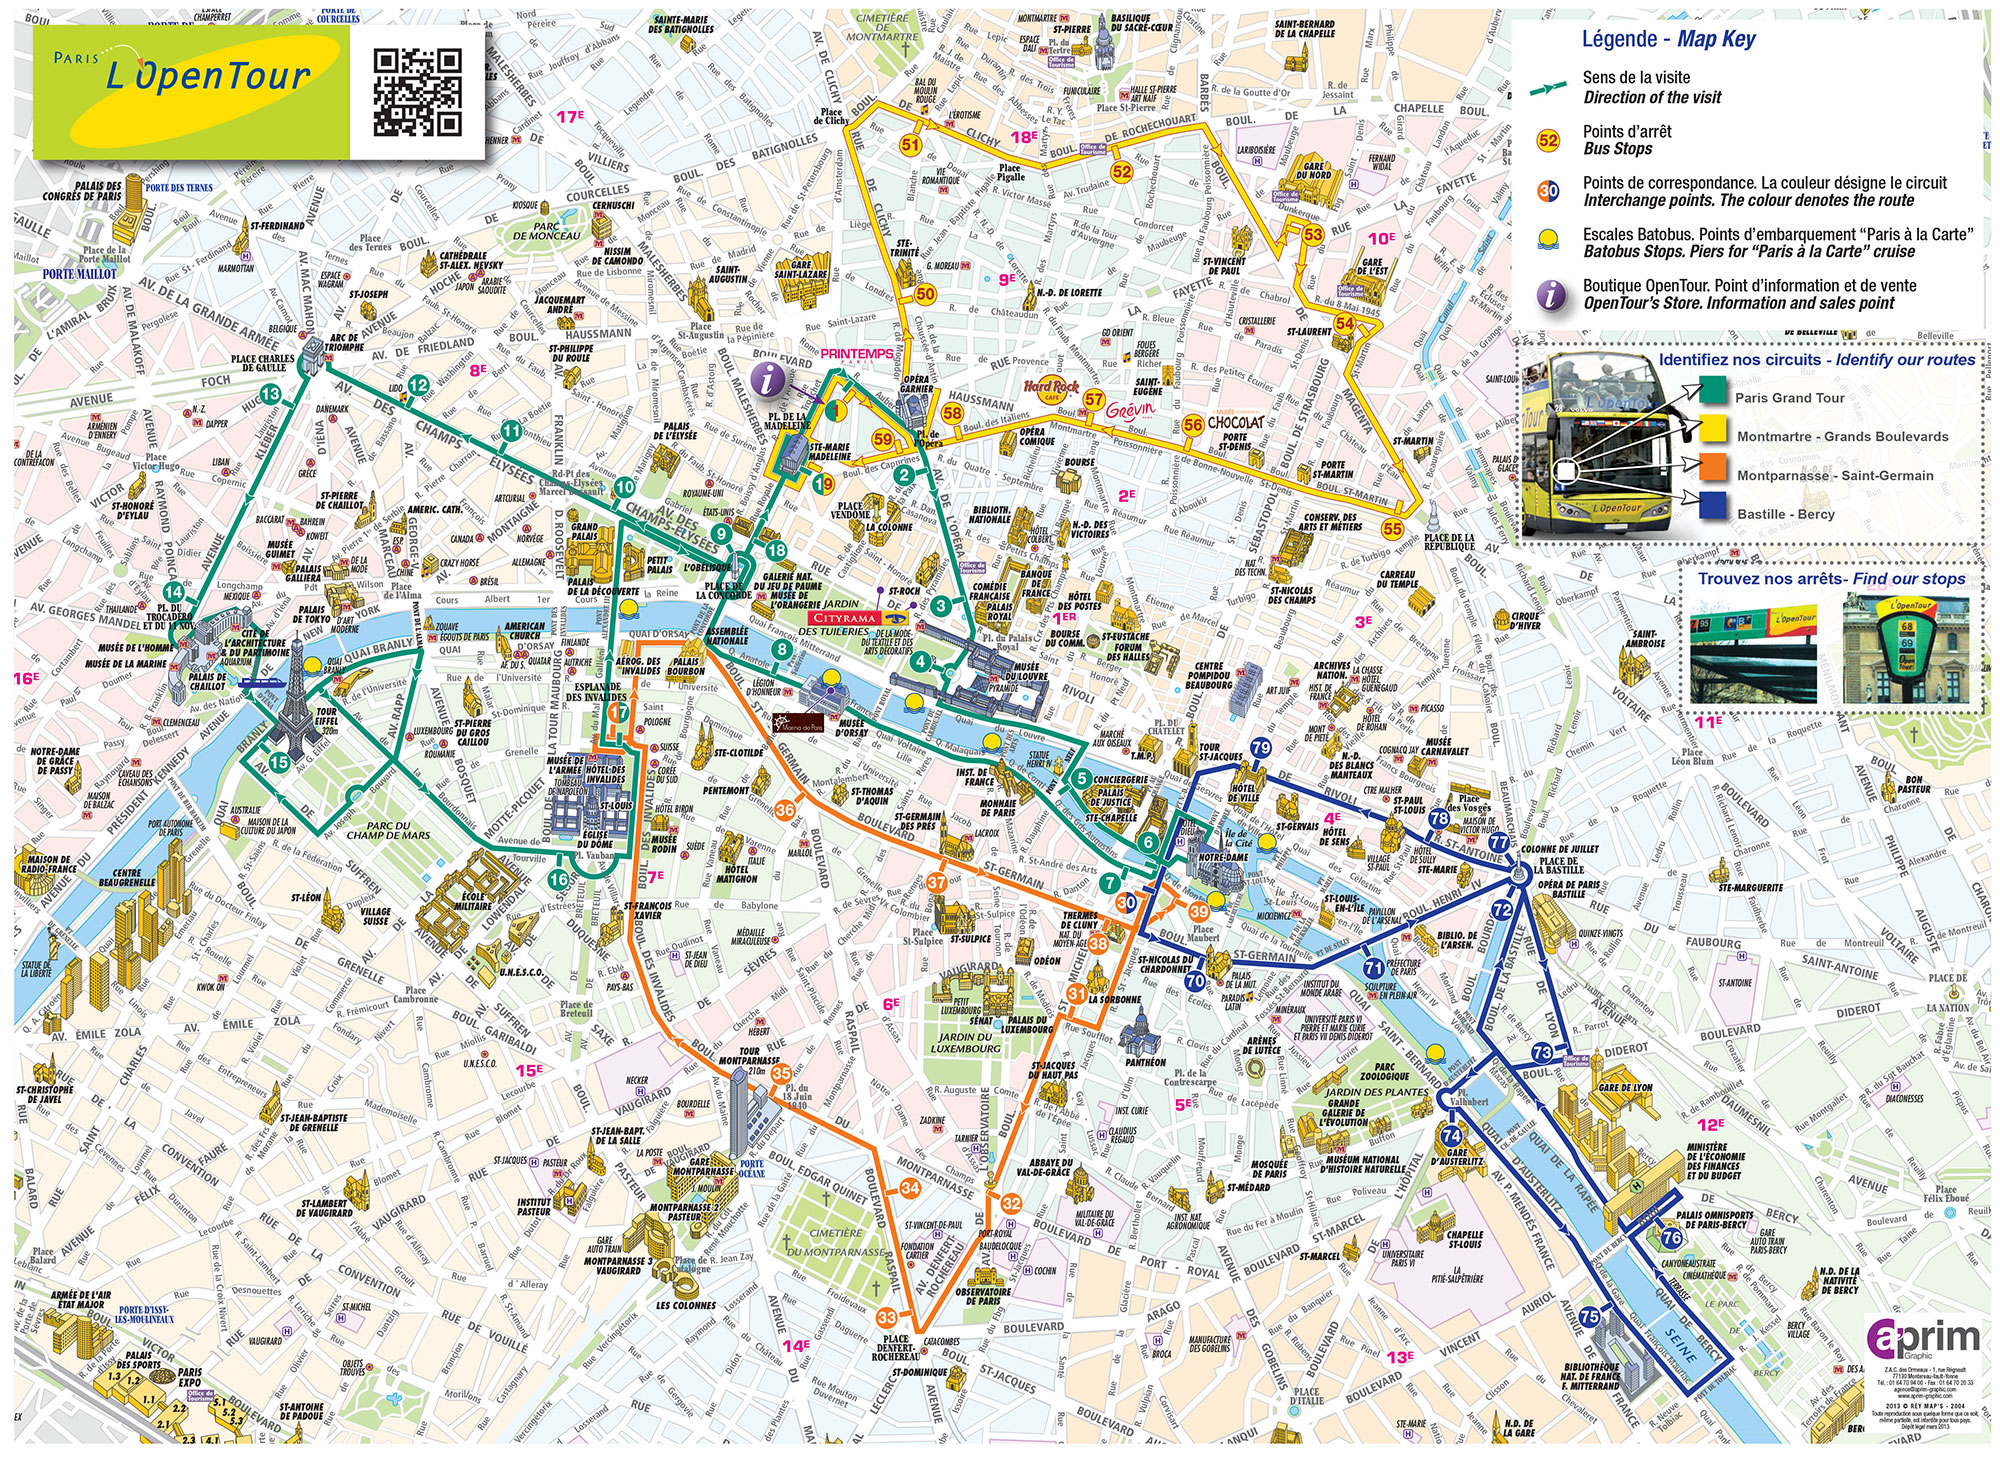 Paris Office Du Tourisme Plan Et Carte Touristique De Paris Monuments Et Circuits